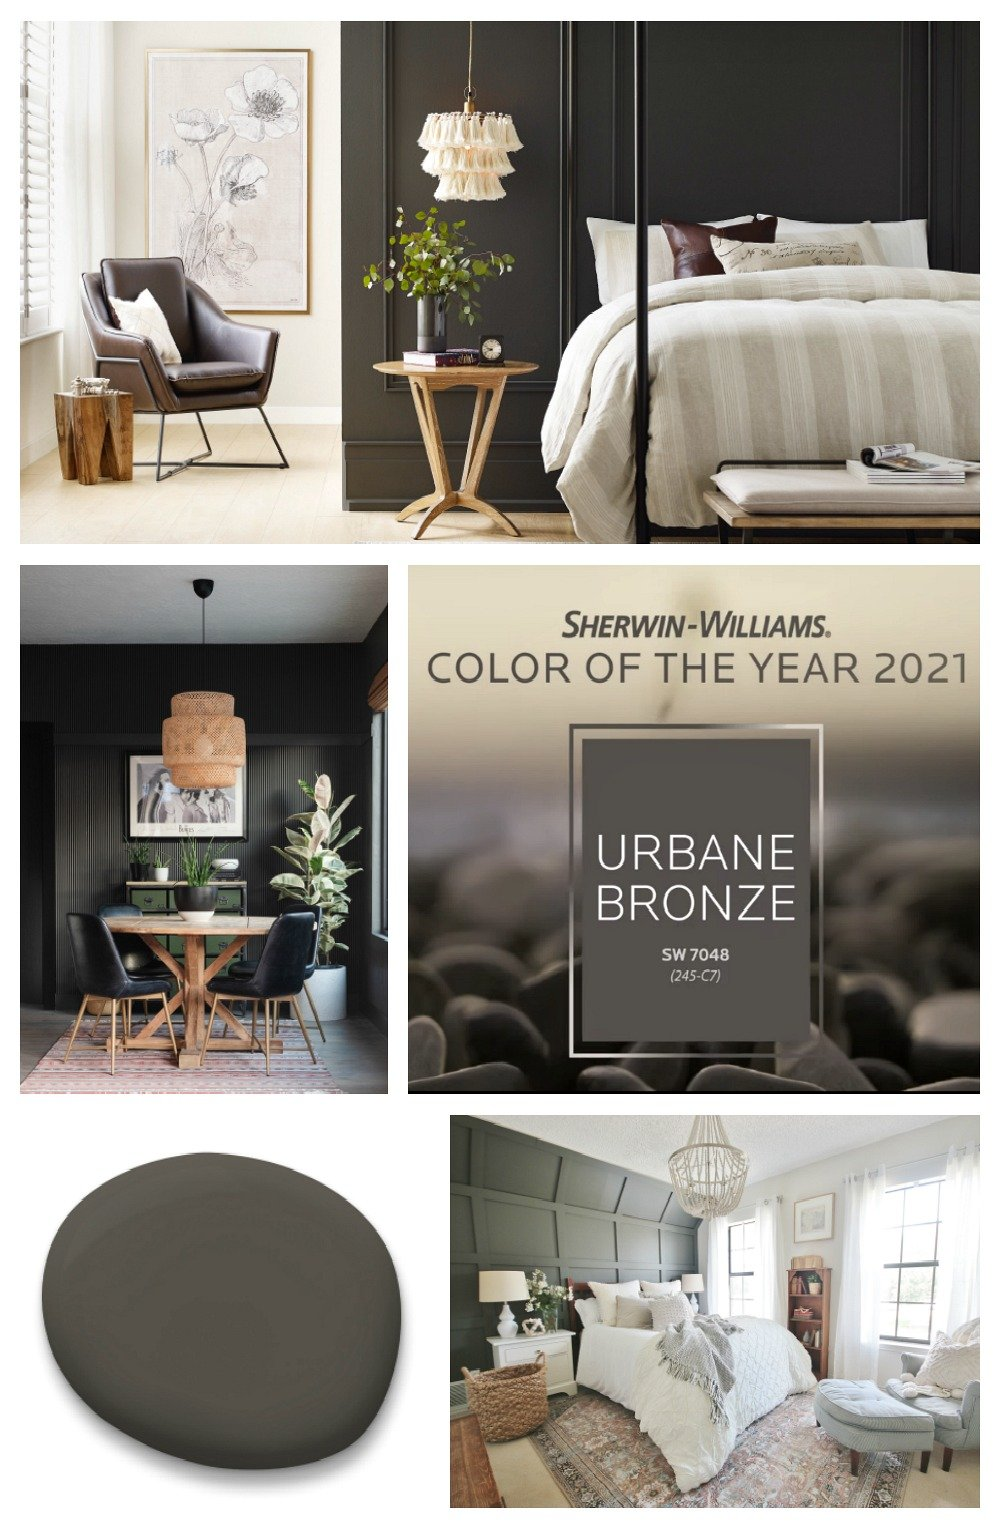 2021 Sherwin Williams 2021 Color of the Year Urbane Bronze